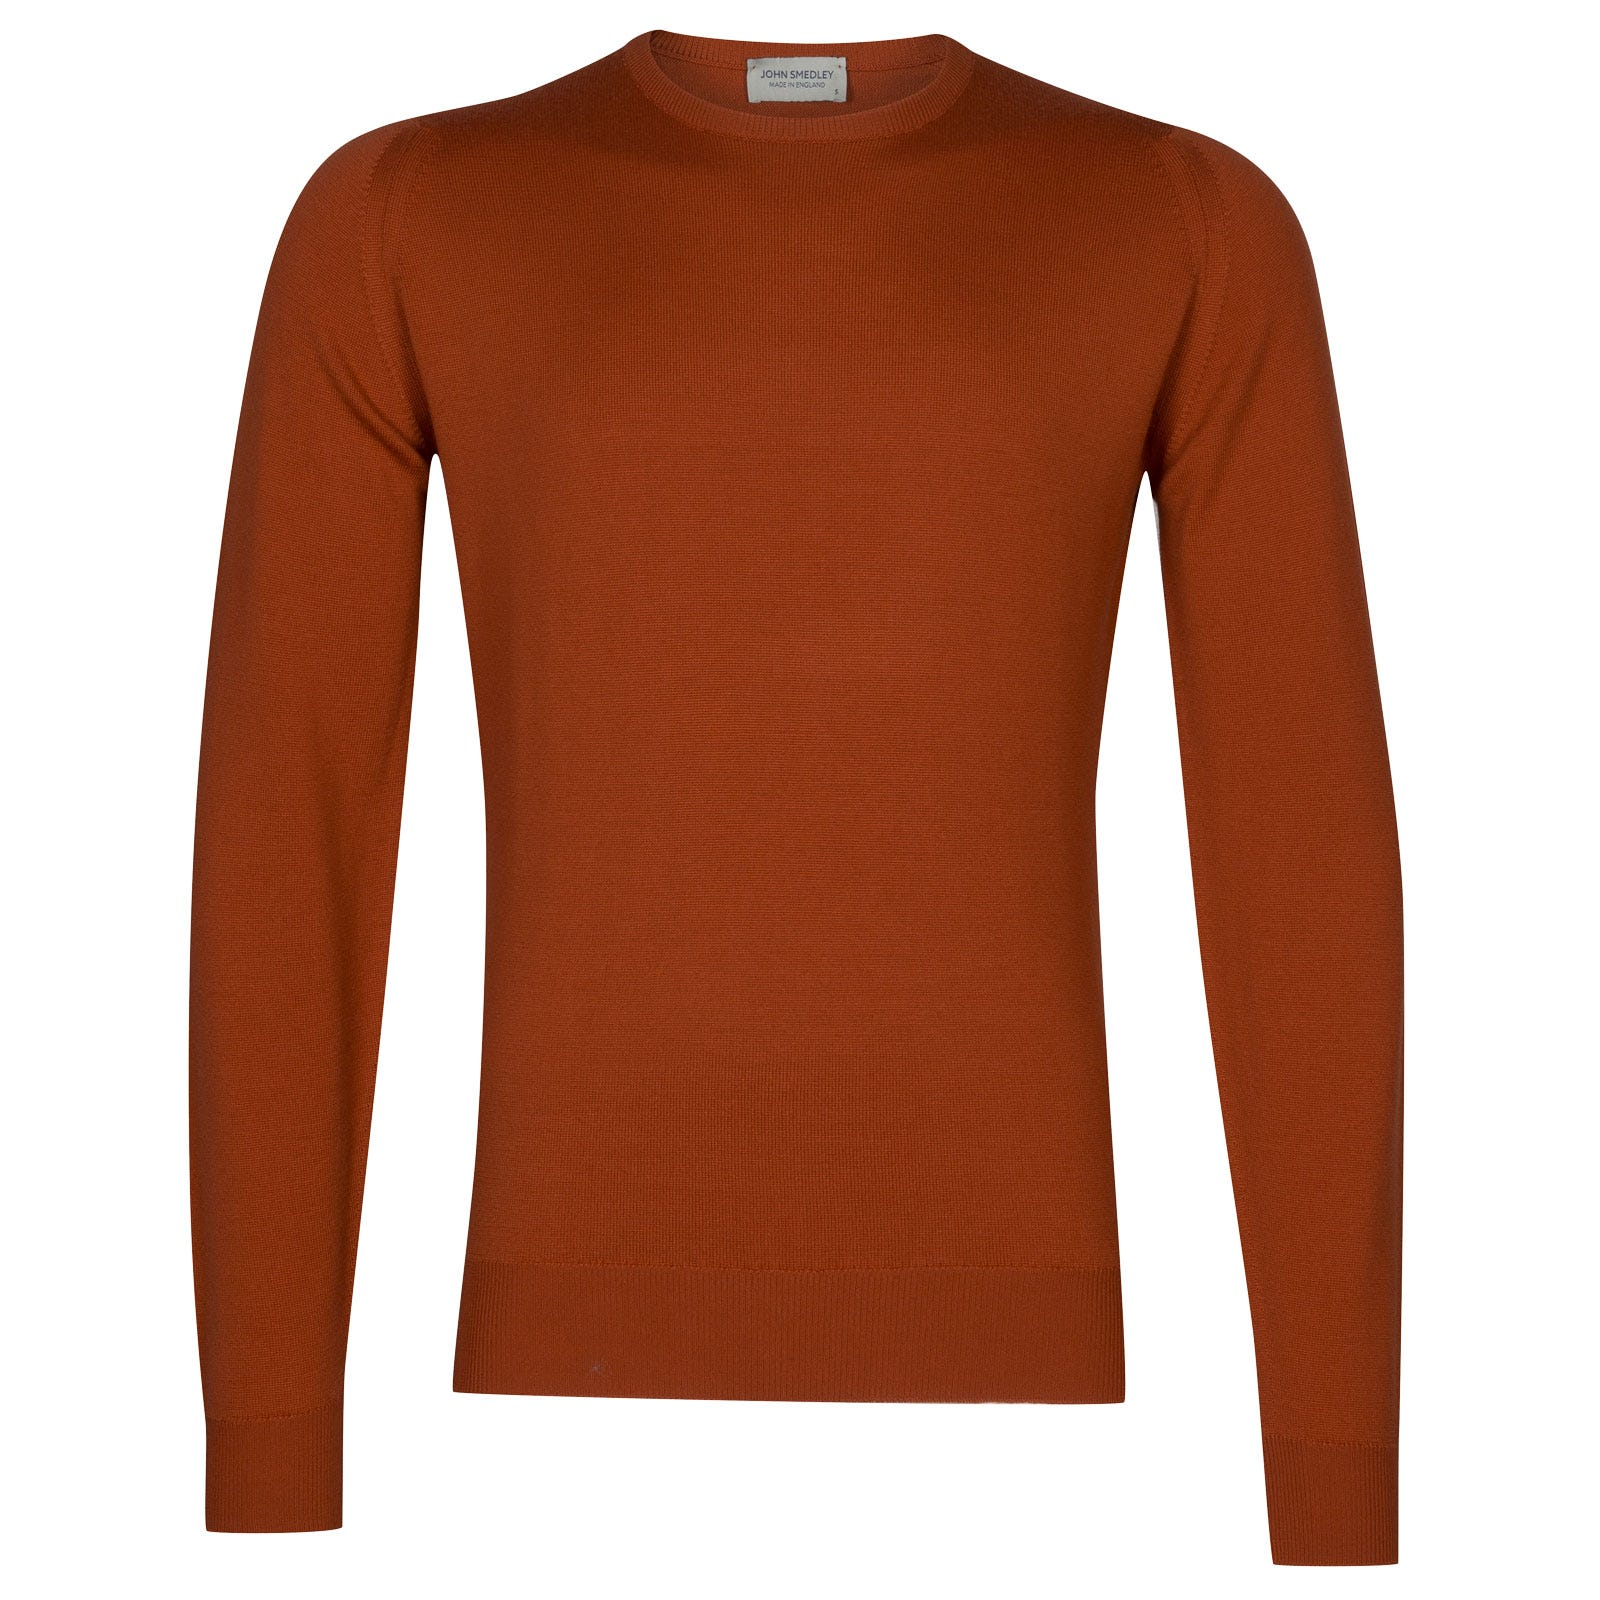 John Smedley farhill Merino Wool Pullover in Flare Orange-L